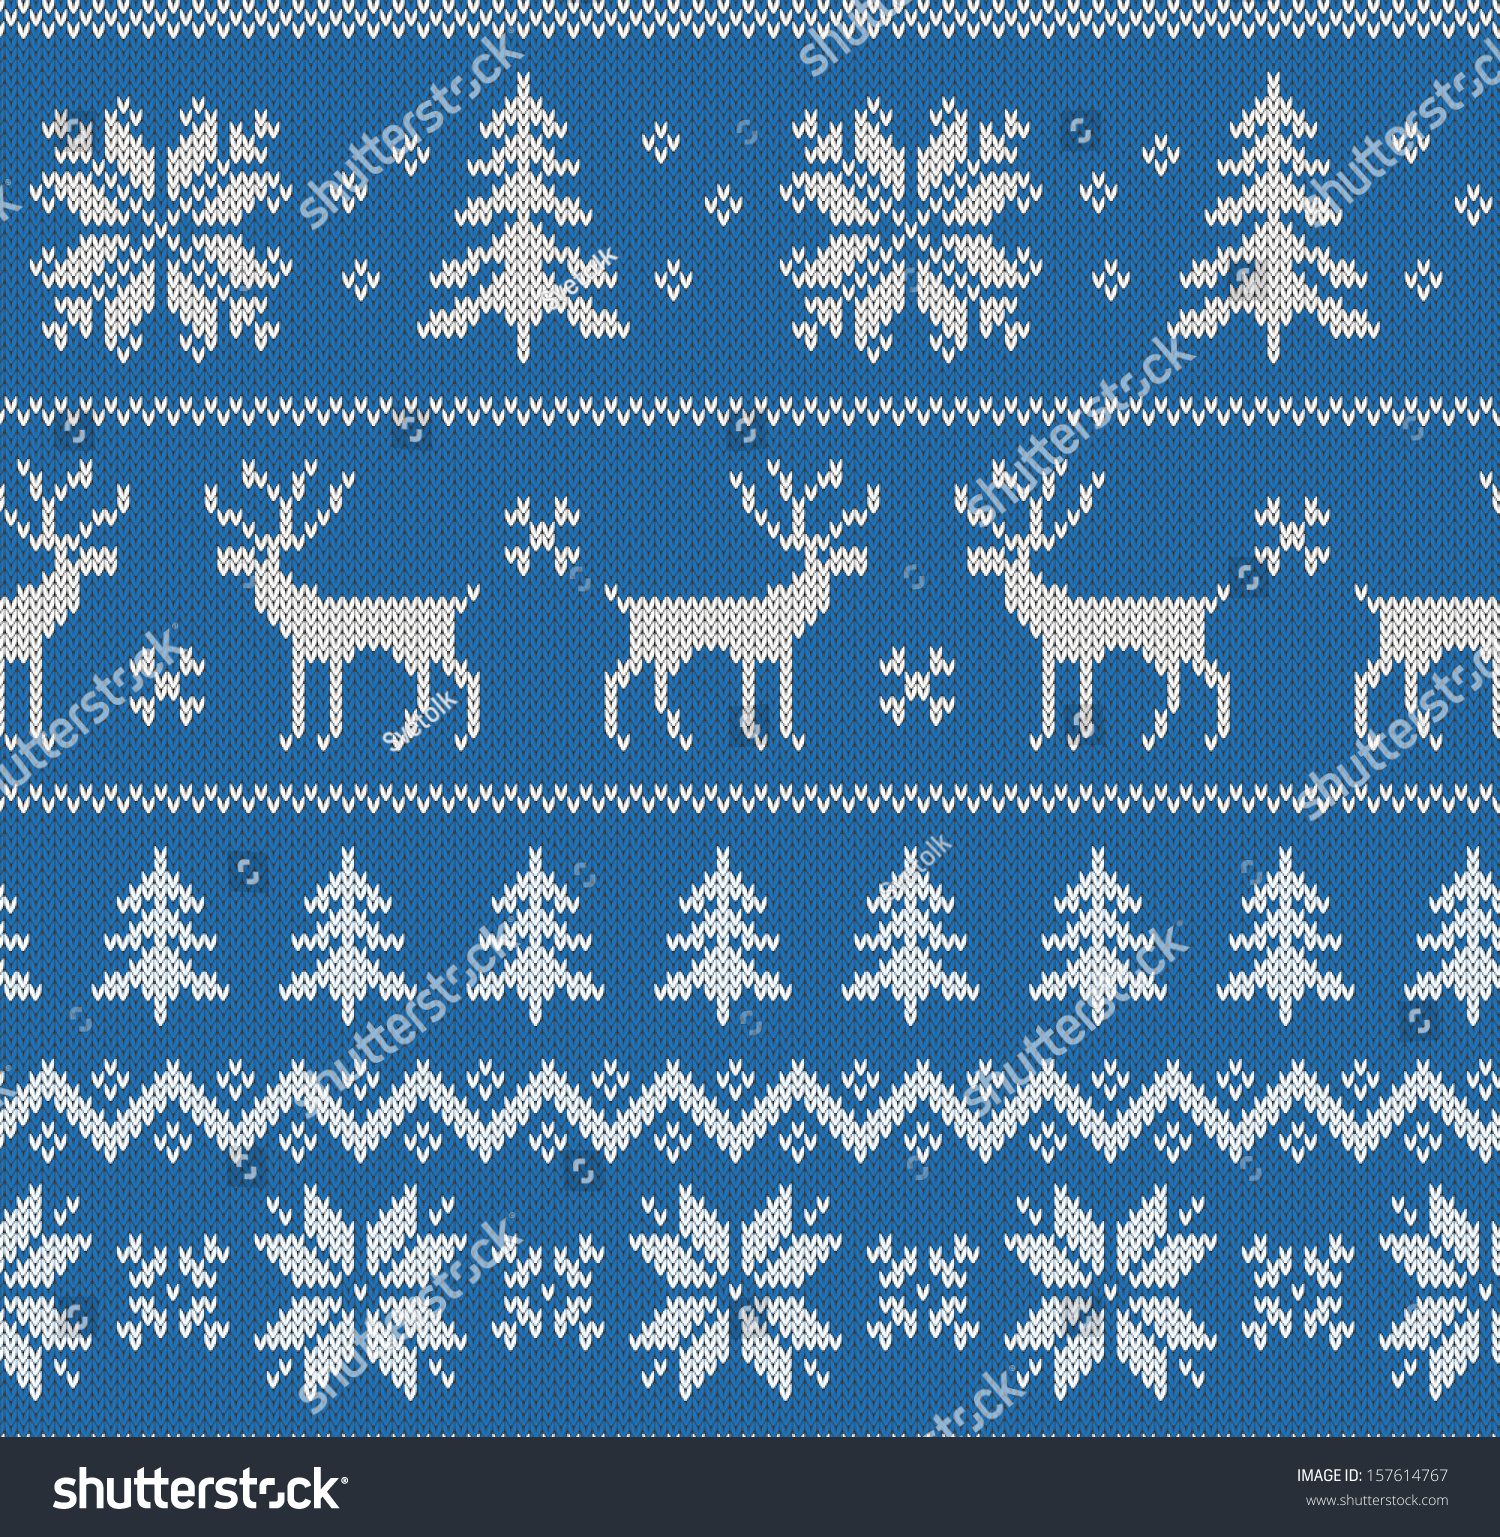 Seamless pattern with imitation of knitted winter sweater design - deer, snowflake and christmas tree